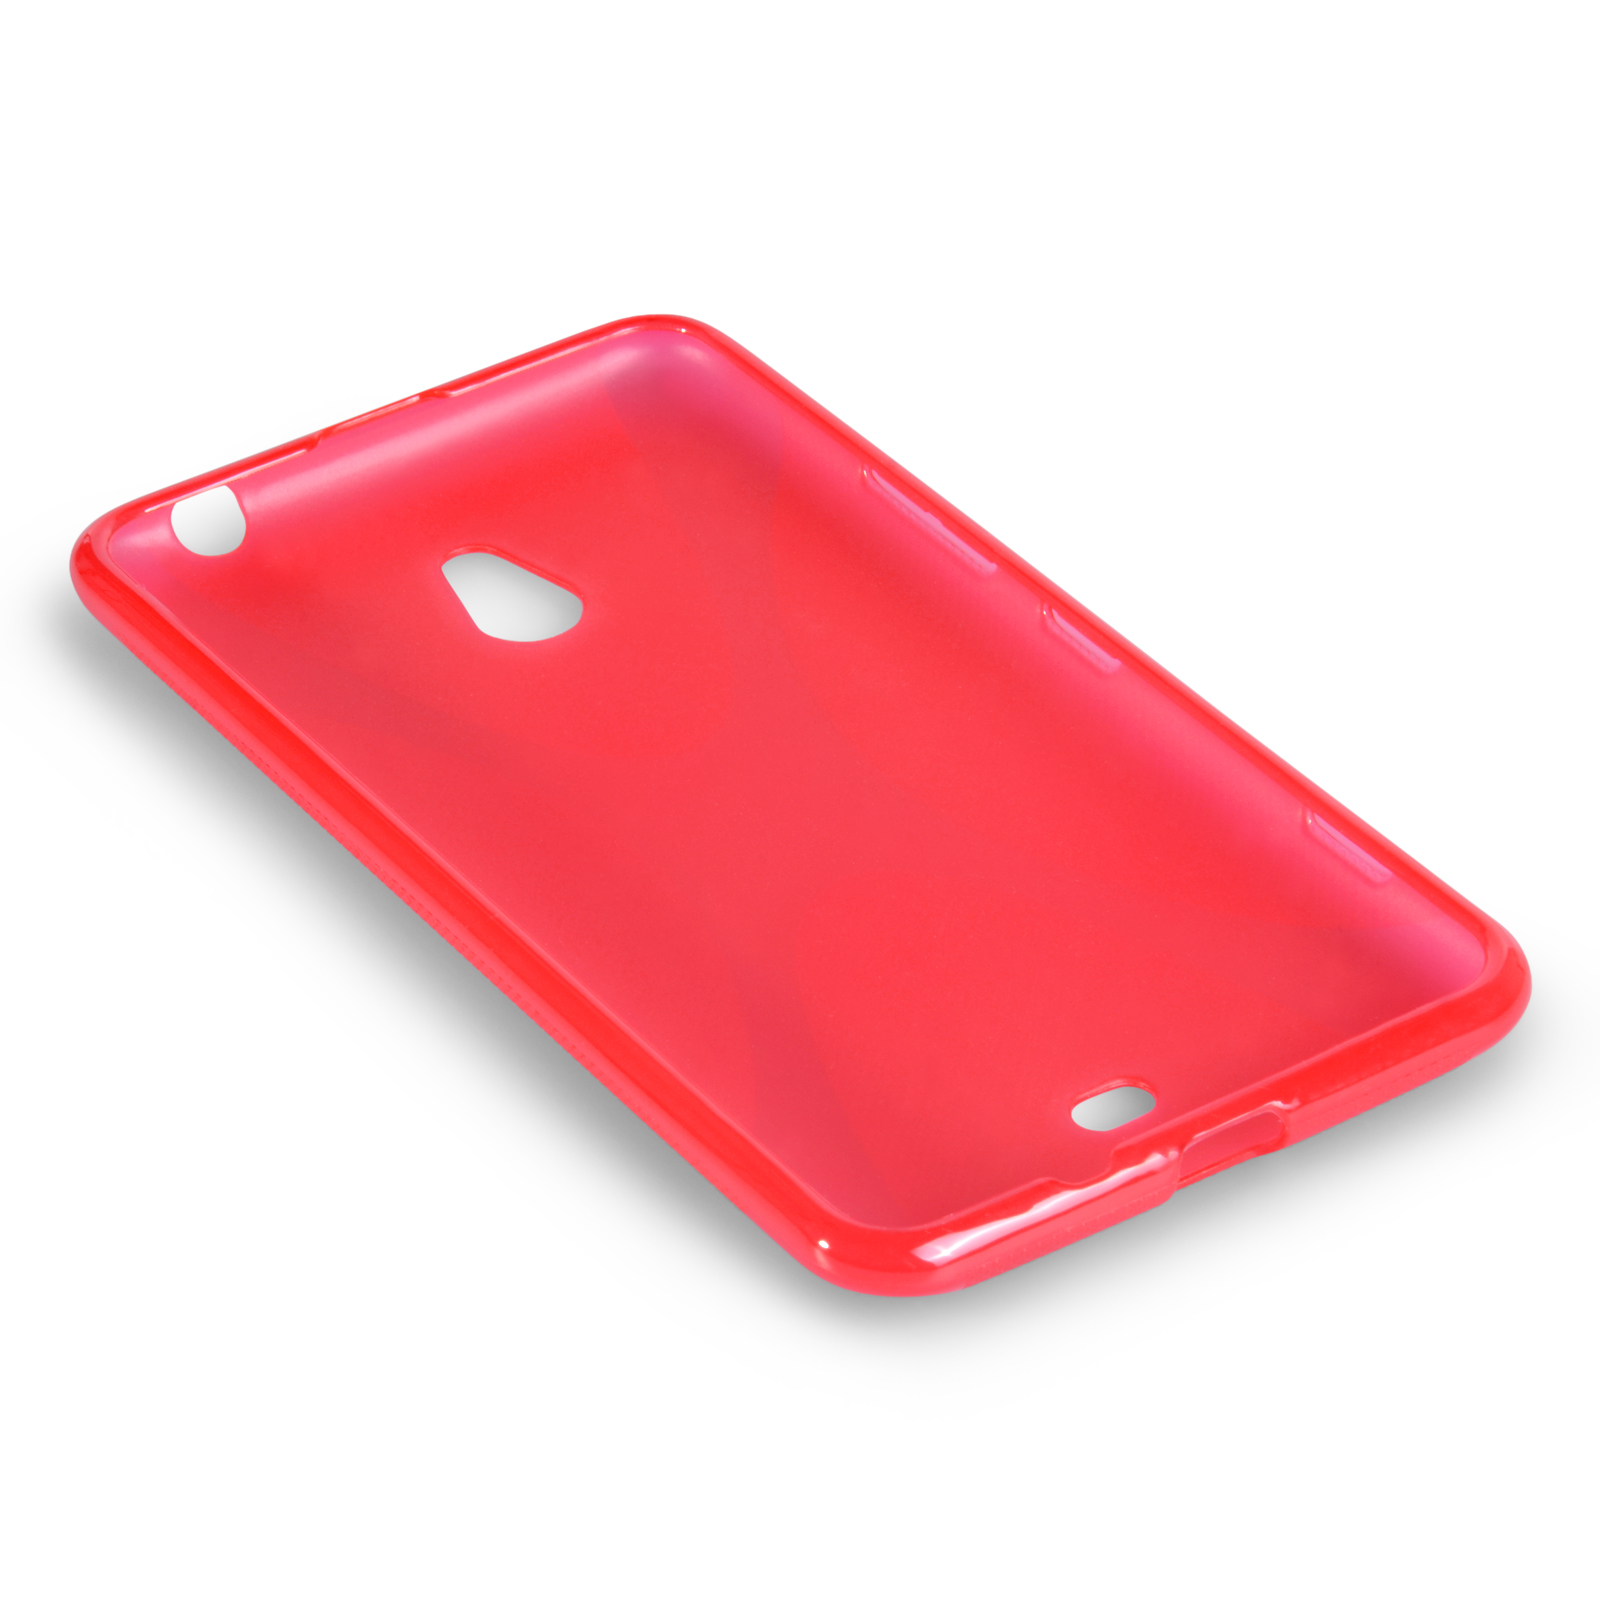 YouSave Accessories Nokia Lumia 1320 Silicone Gel X-Line Case - Red